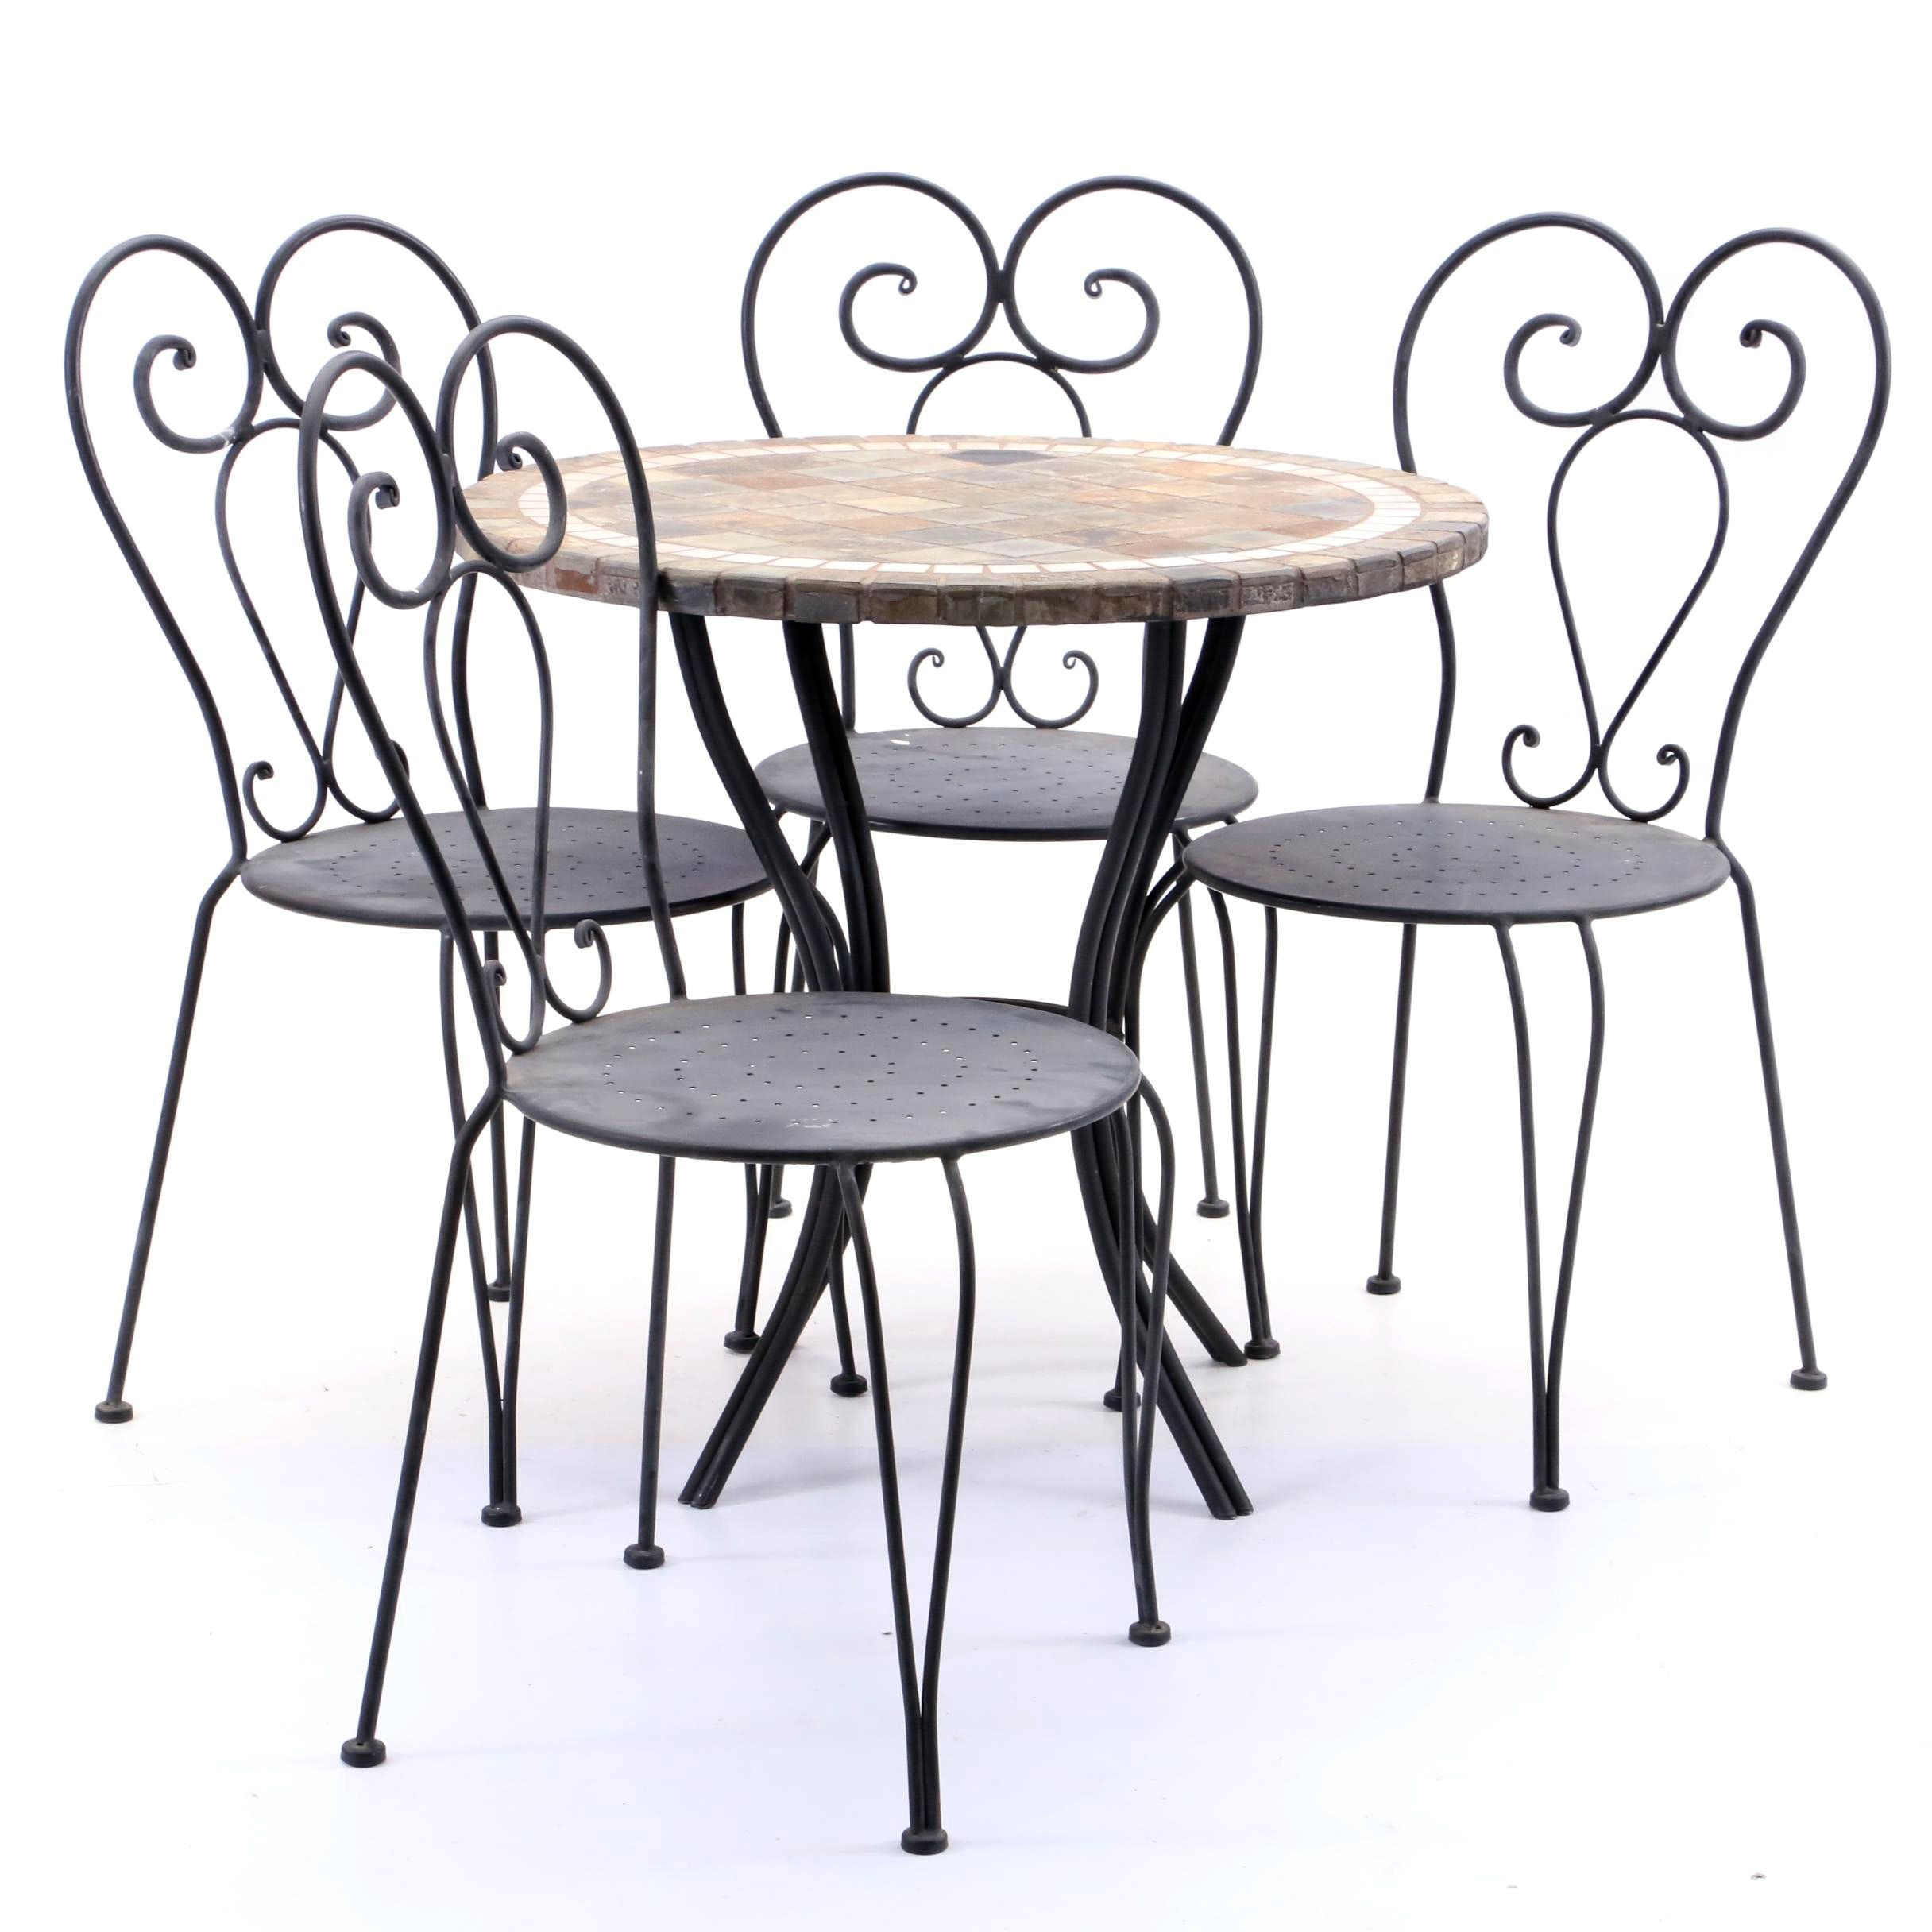 Slate Outdoor Patio Table with Four Chairs